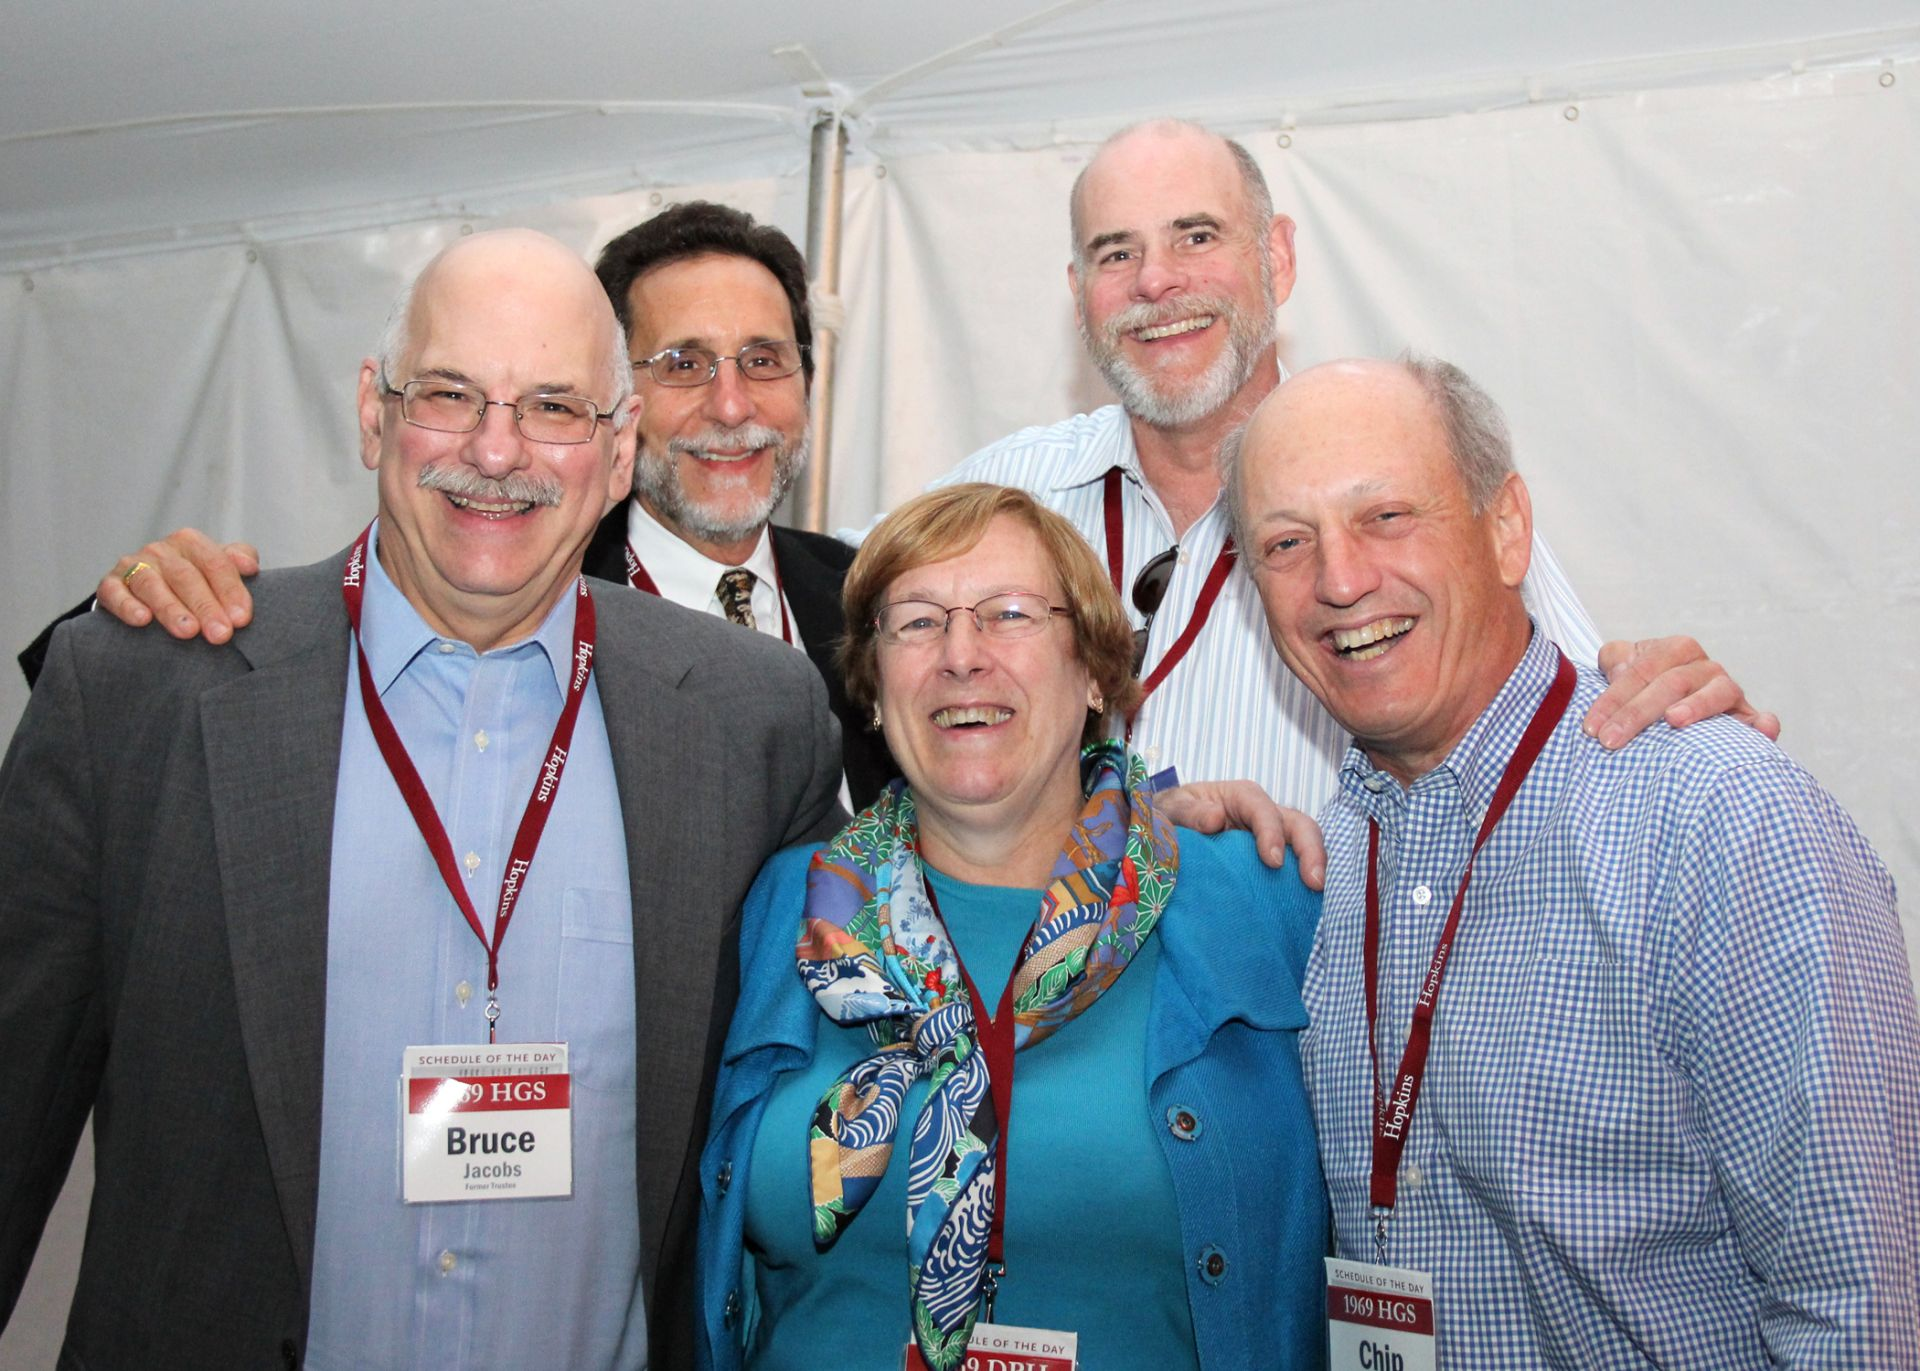 1969 HGS and DPH - 45th Reunion